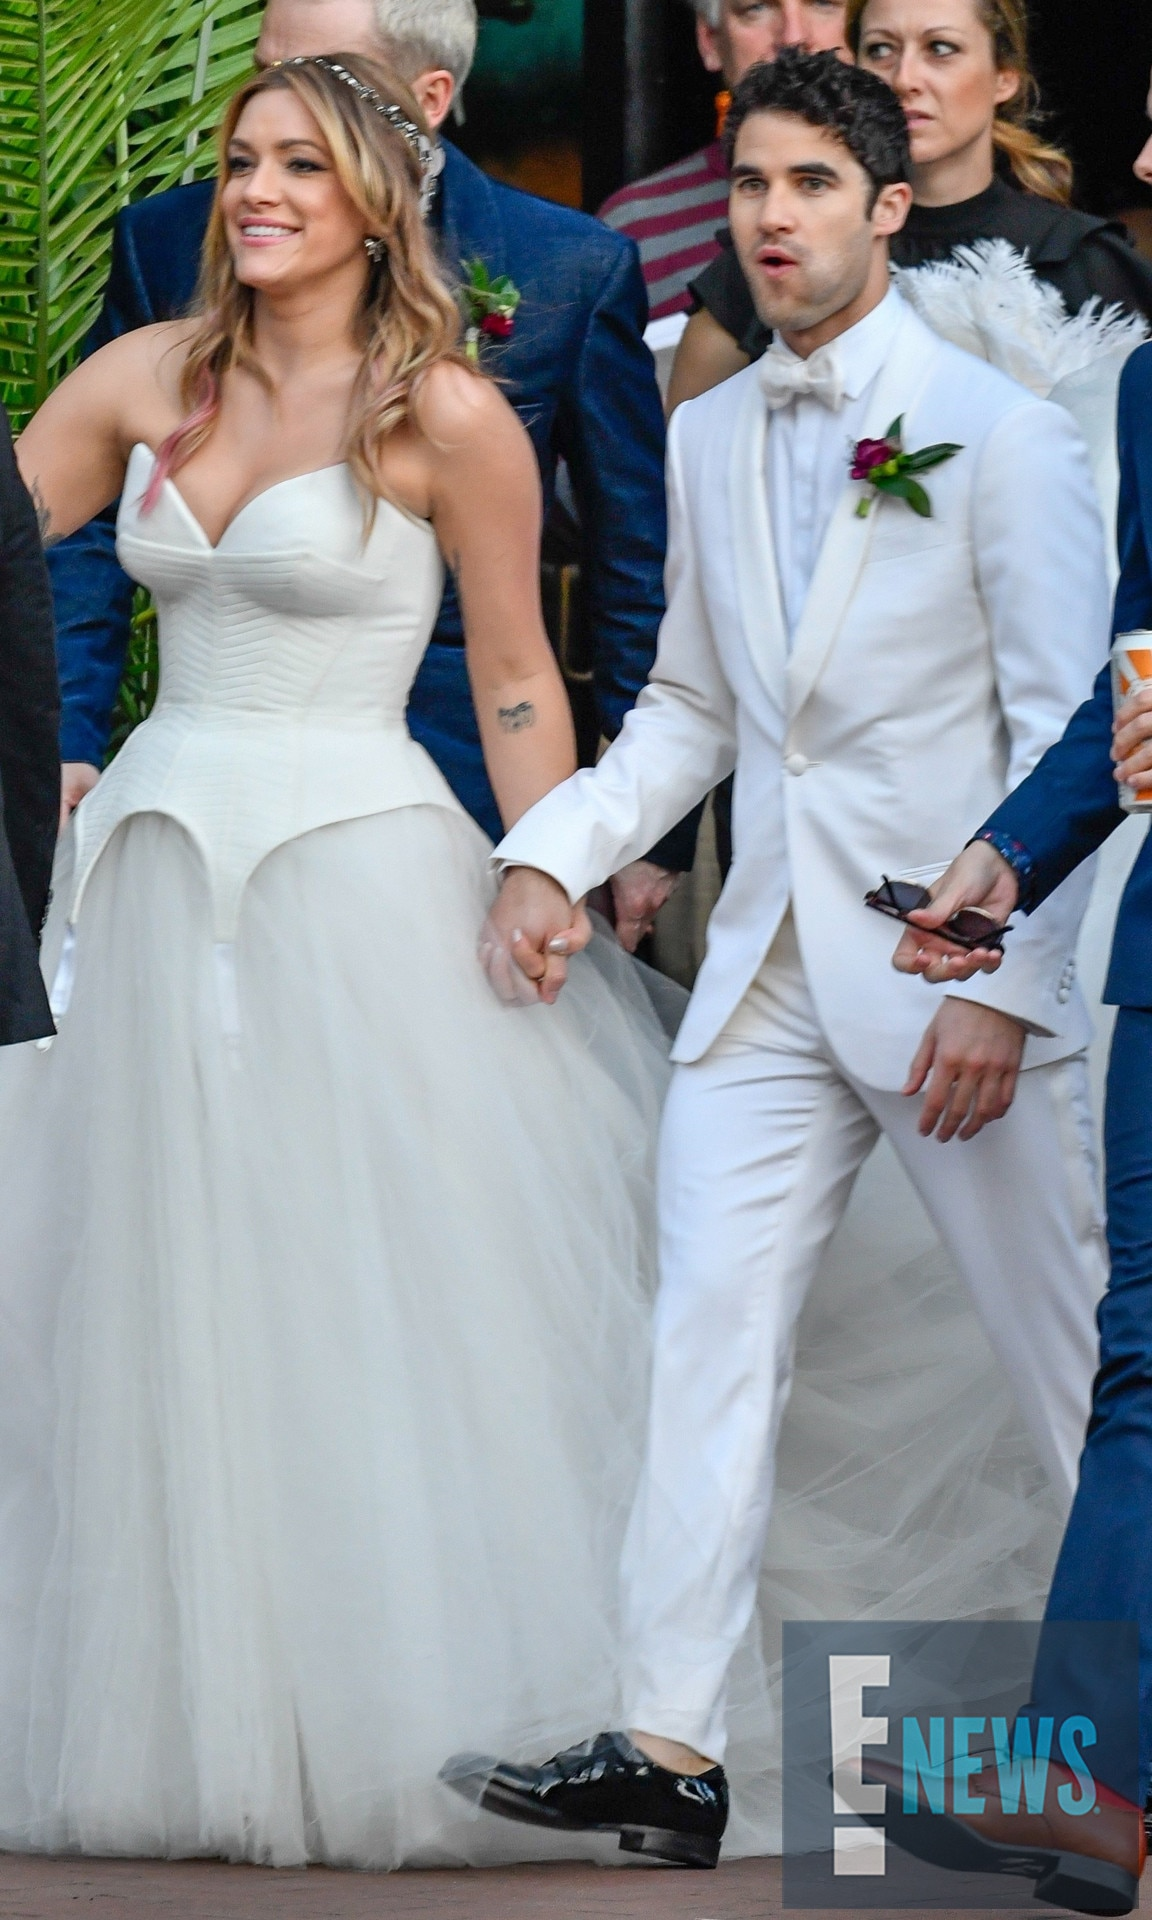 The Mr. & Mrs. -  Mia Swier and Darren Criss exit the Ace Hotel in New Orleans as husband and wife.